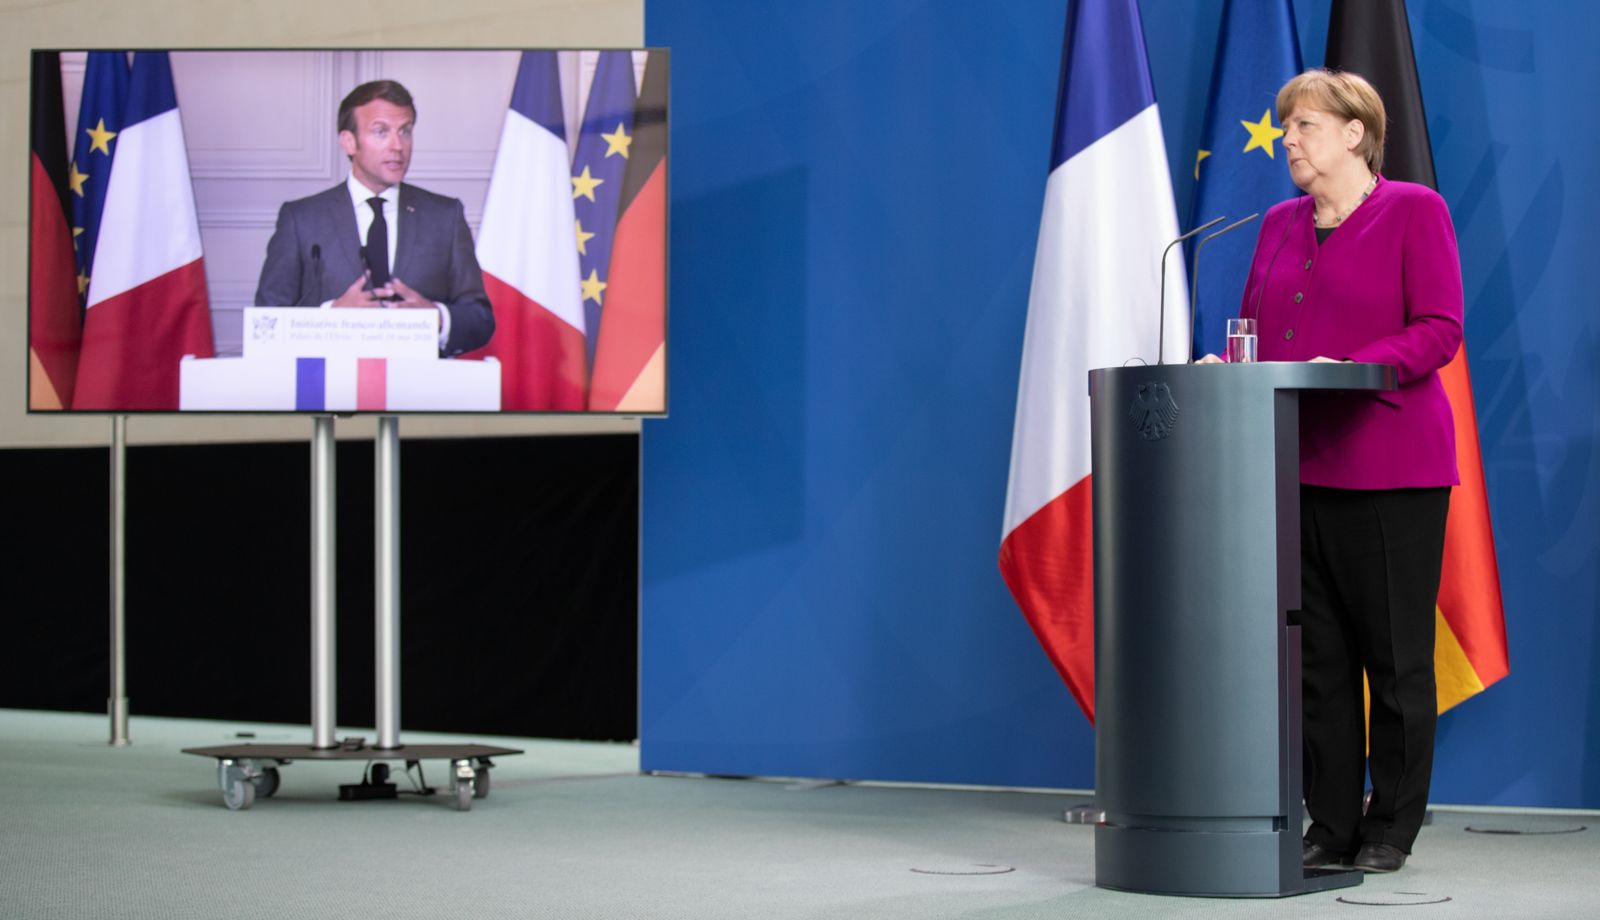 Merkel And Macron Hold Joint Press Conference During The Coronavirus Crisis